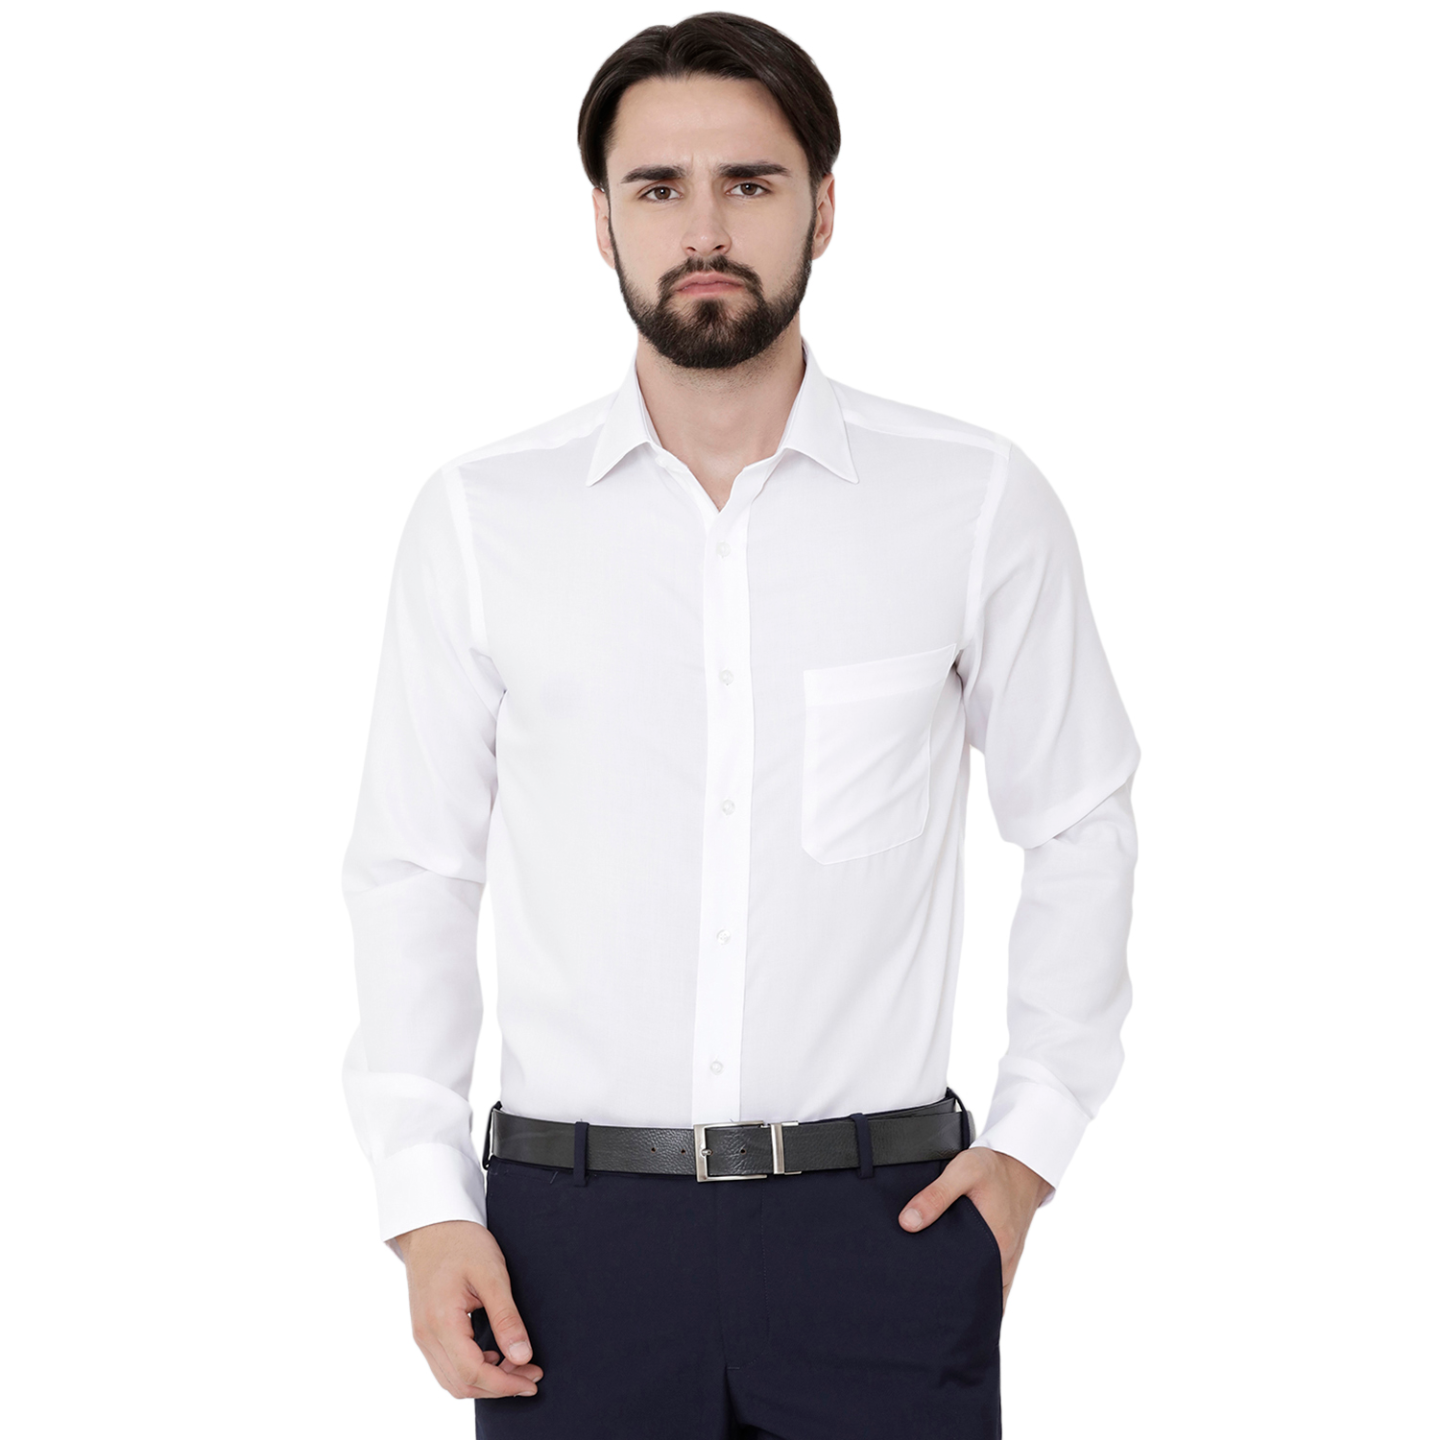 Double TWO Paradigm Men's Solid White Pure Cotton Non-Iron Shirt